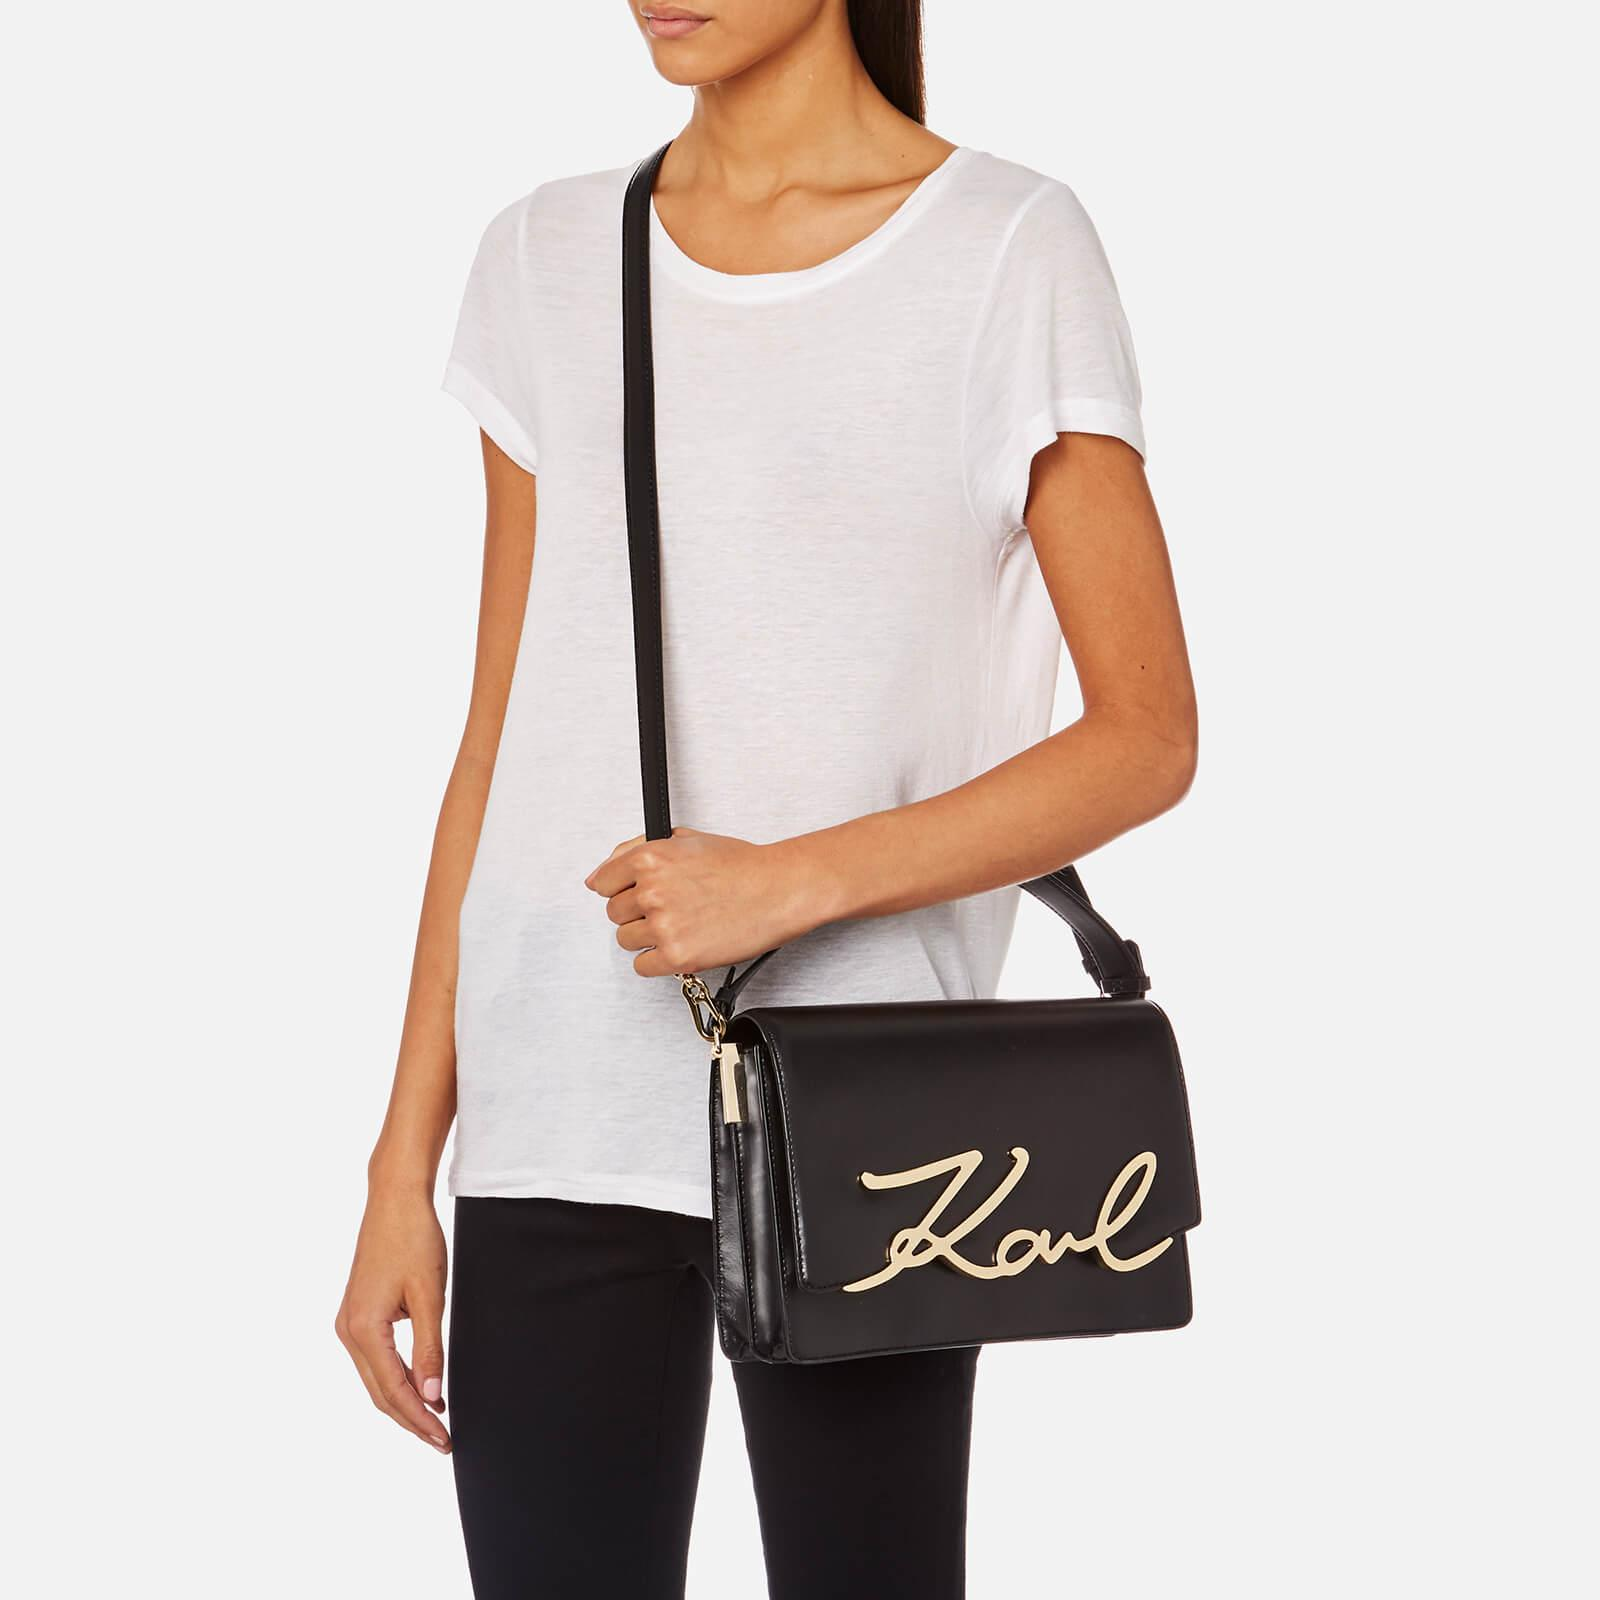 6d2ce143781f Lyst - Karl Lagerfeld Signature Big Shoulder Bag in Black